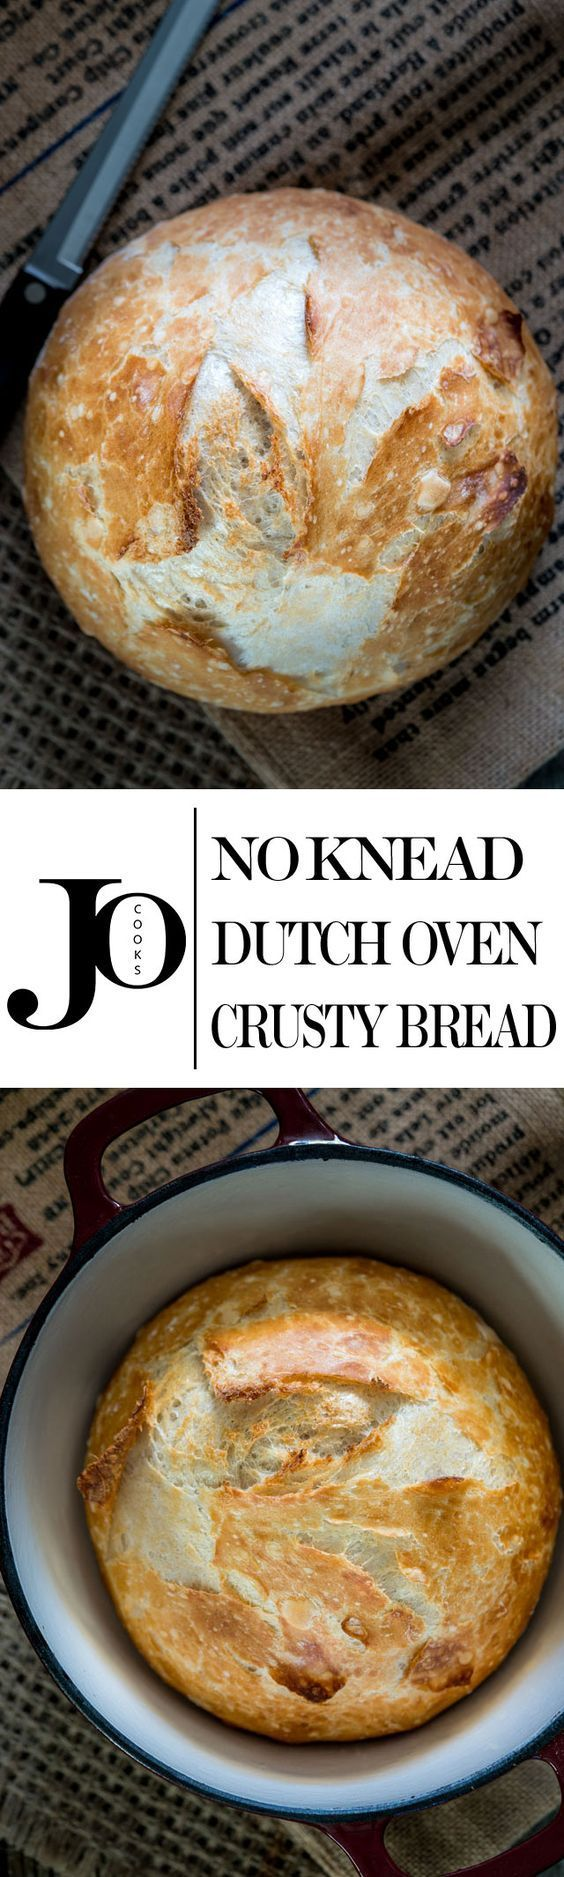 No Knead Dutch Oven Crusty Bread No Kneading Required 4 Simple Ingredients In 2019 Dutch